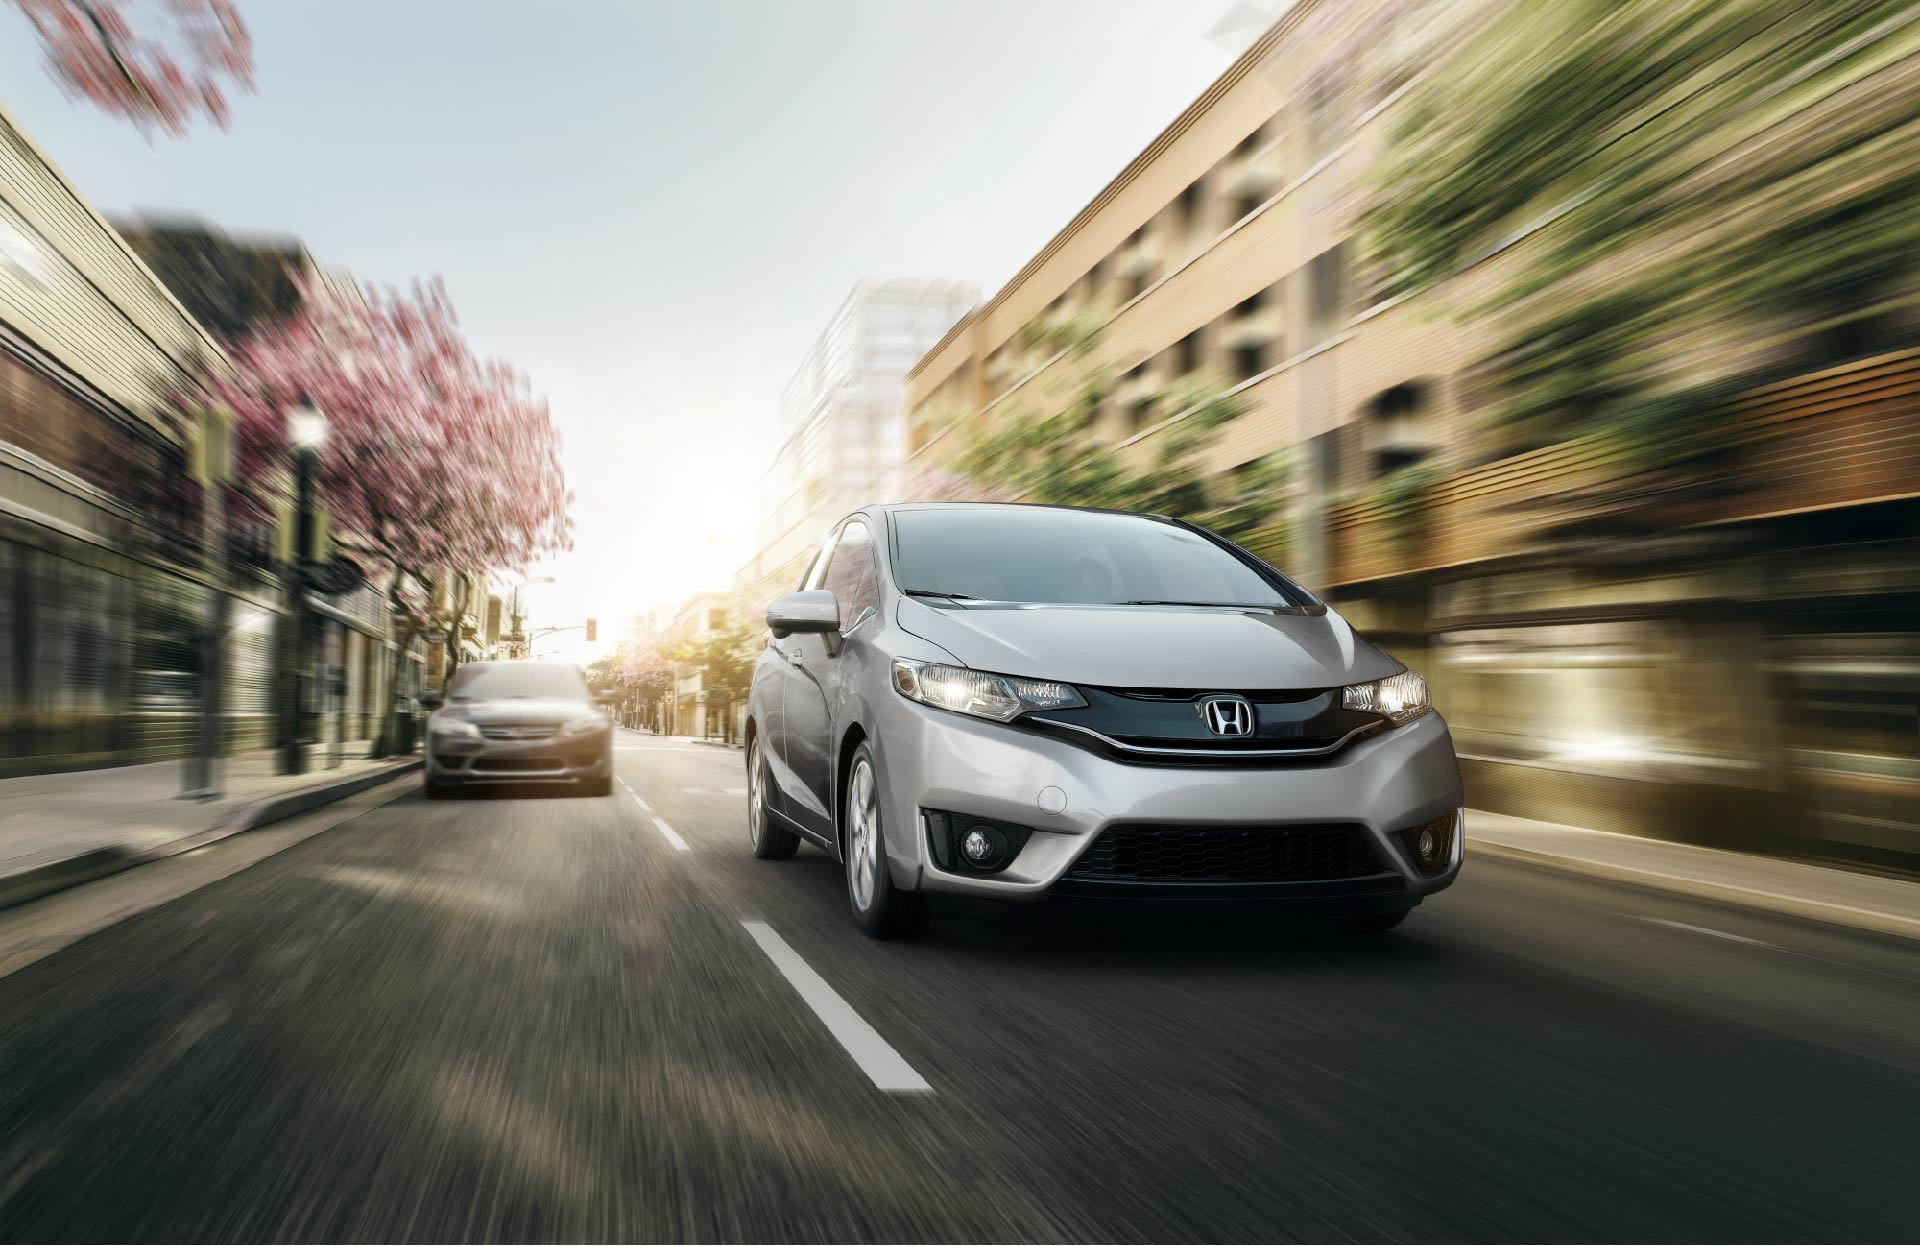 New Honda Fit Deals in Burien WA